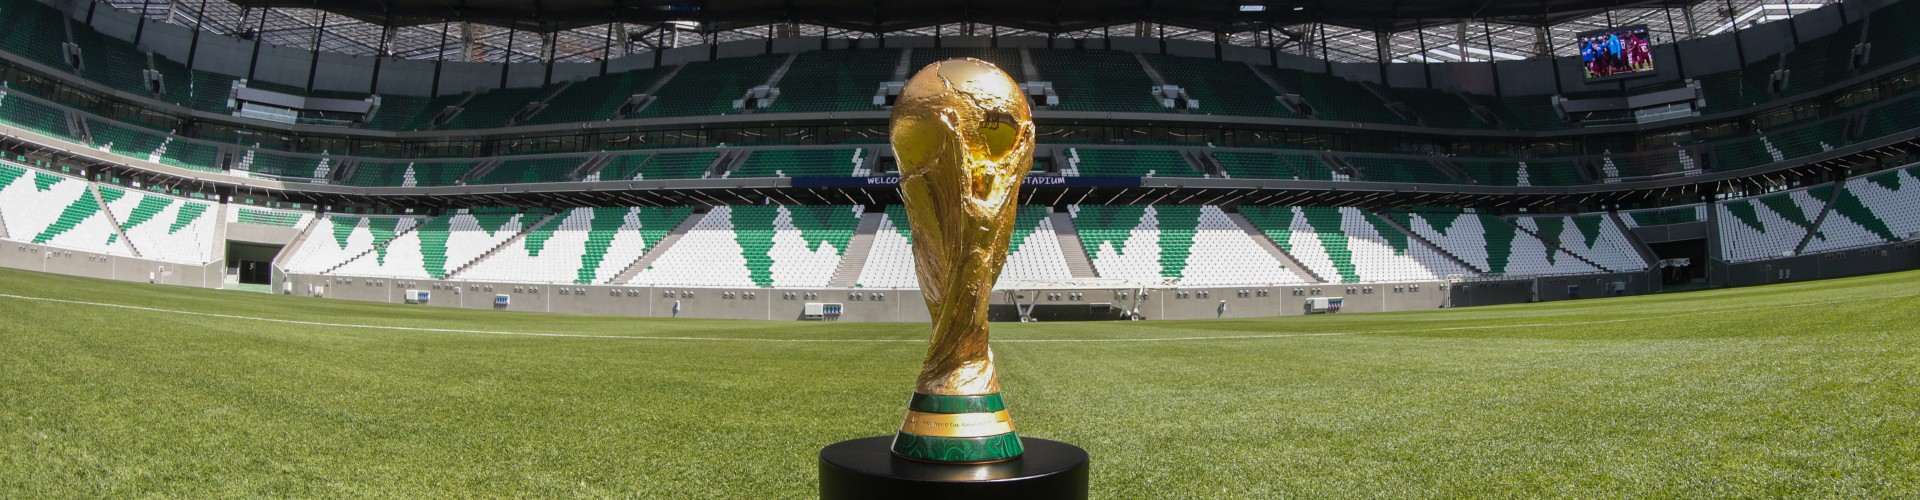 The FIFA World Cup™ Winner's Trophy